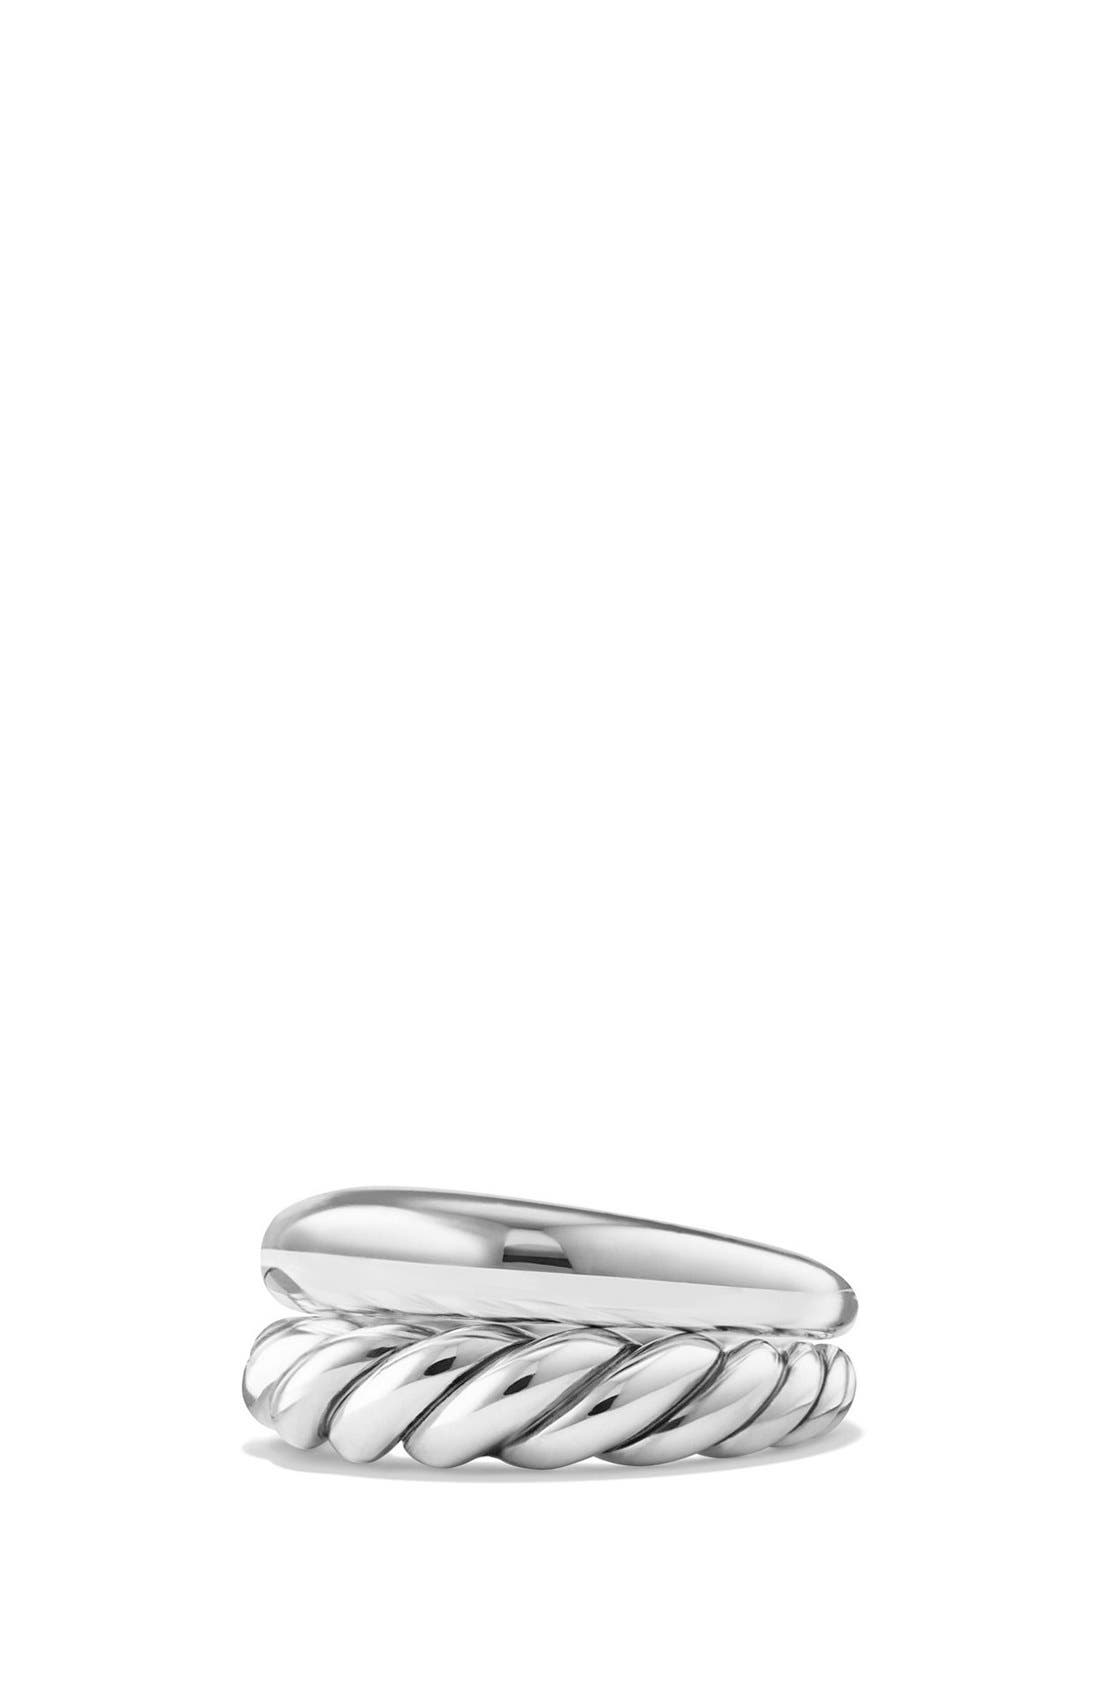 'Pure Form' Sterling Silver Stacking Rings,                         Main,                         color, Silver